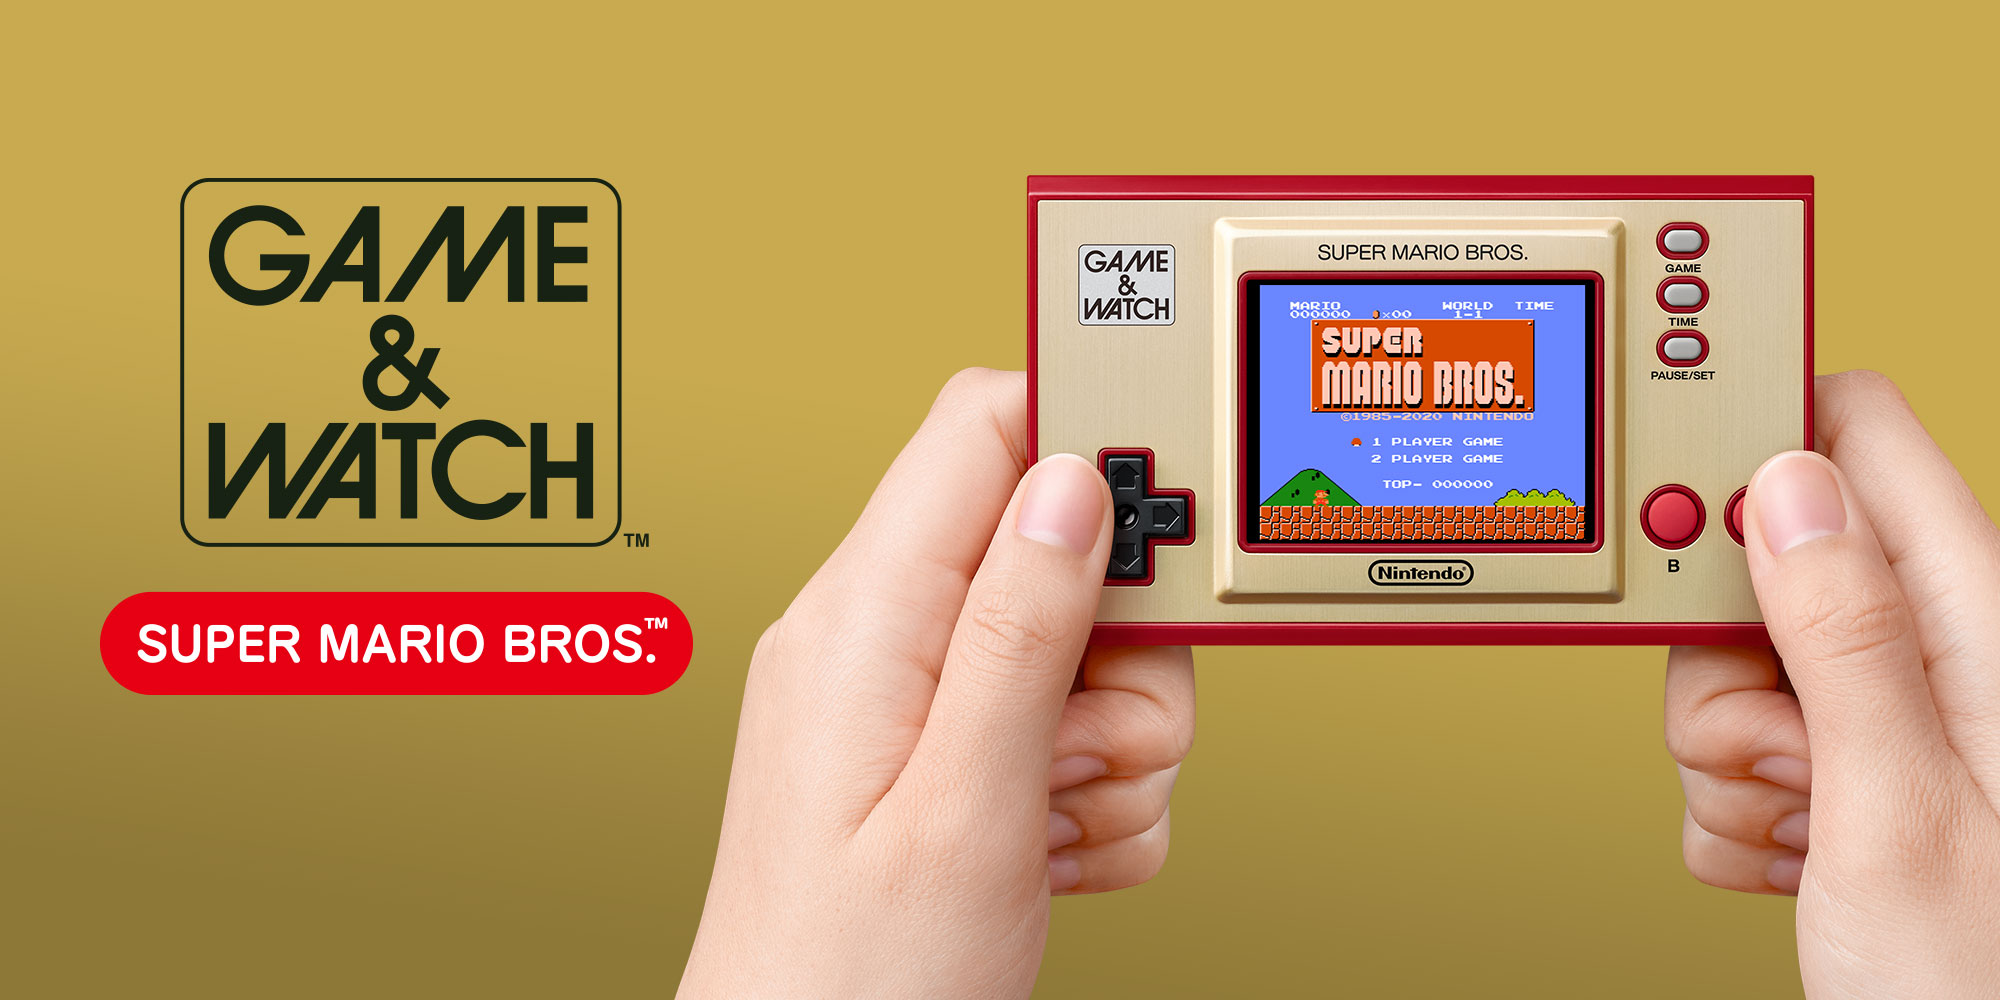 https://cdn03.nintendo-europe.com/media/images/10_share_images/others_3/H2x1_GameAndWatch_SuperMarioBros.jpg